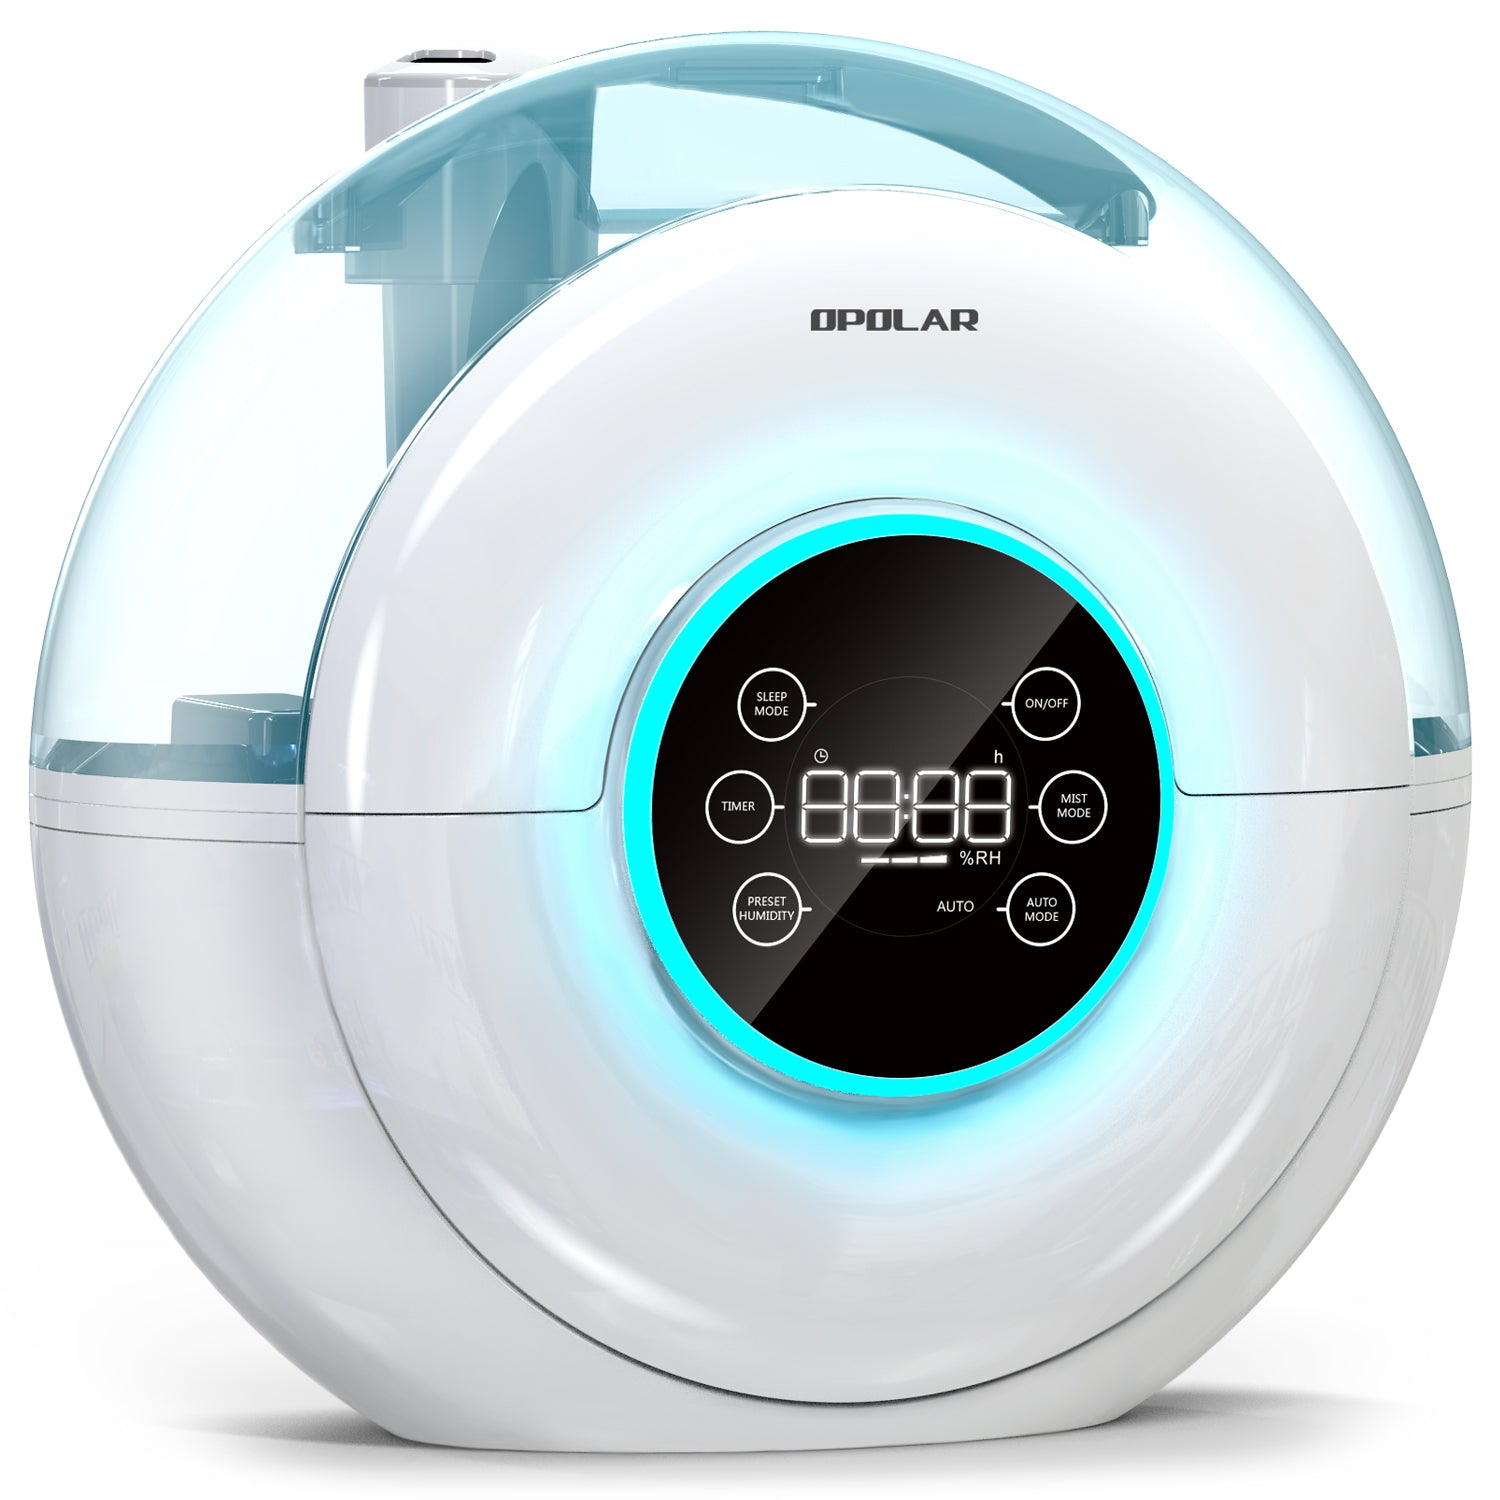 OPOLAR 4L/1.05 Gallon Quiet Ultrasonic Cool Mist Humidifier baby sleep gadget